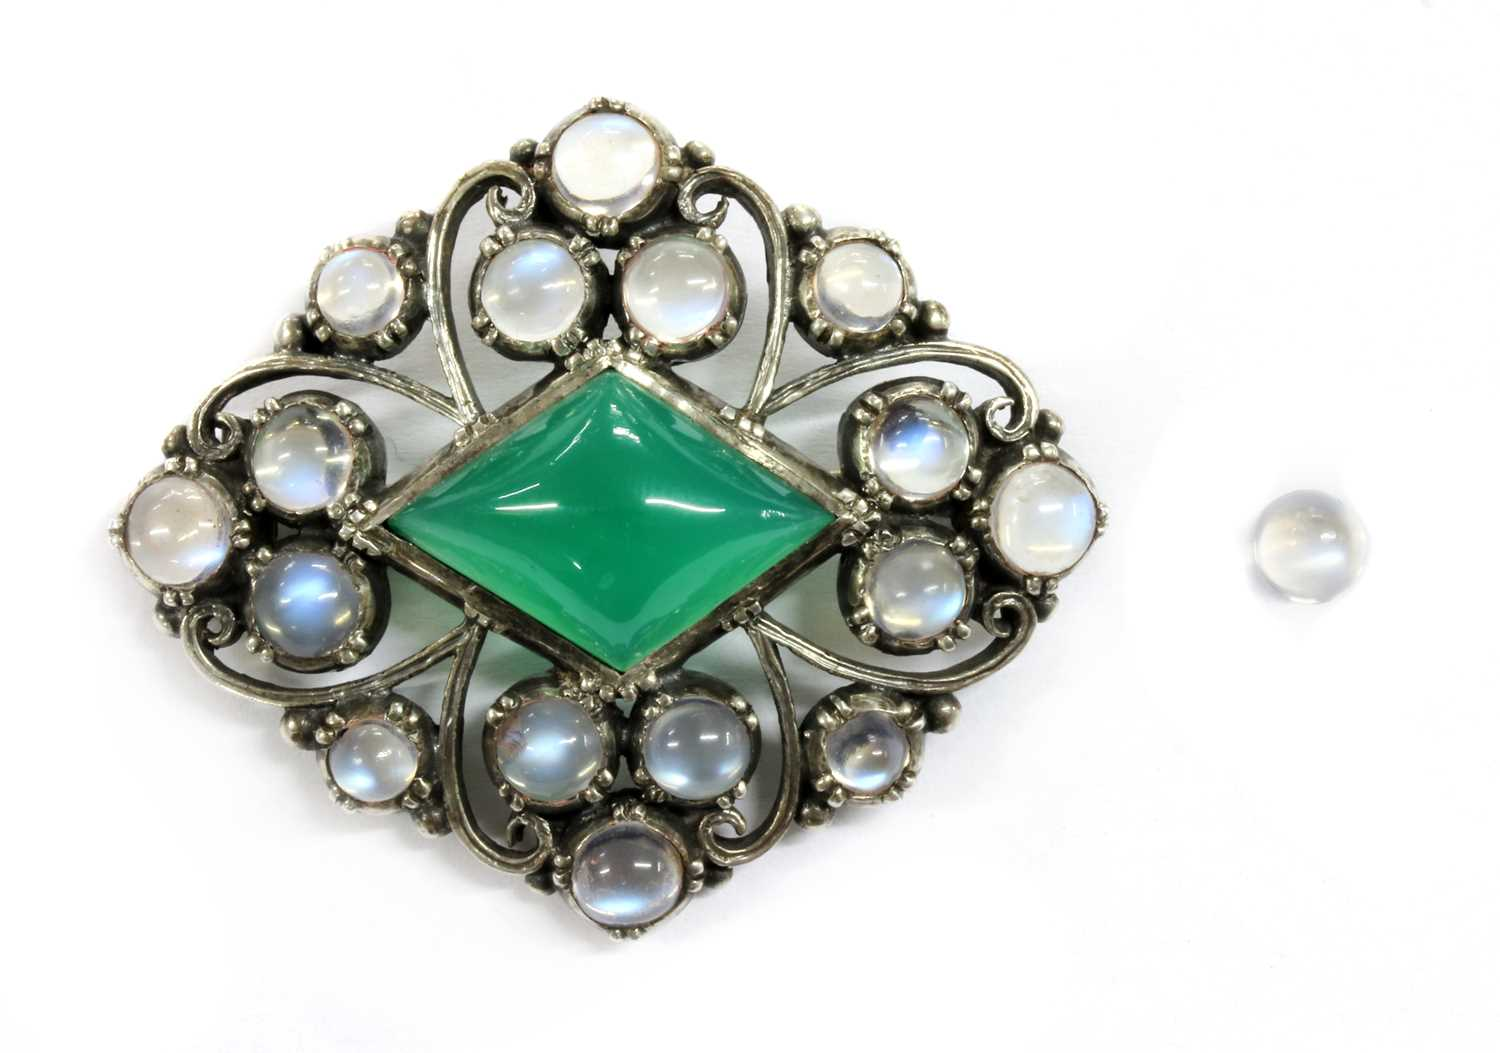 Lot 50 - An Arts & Crafts silver dyed green agate and moonstone brooch